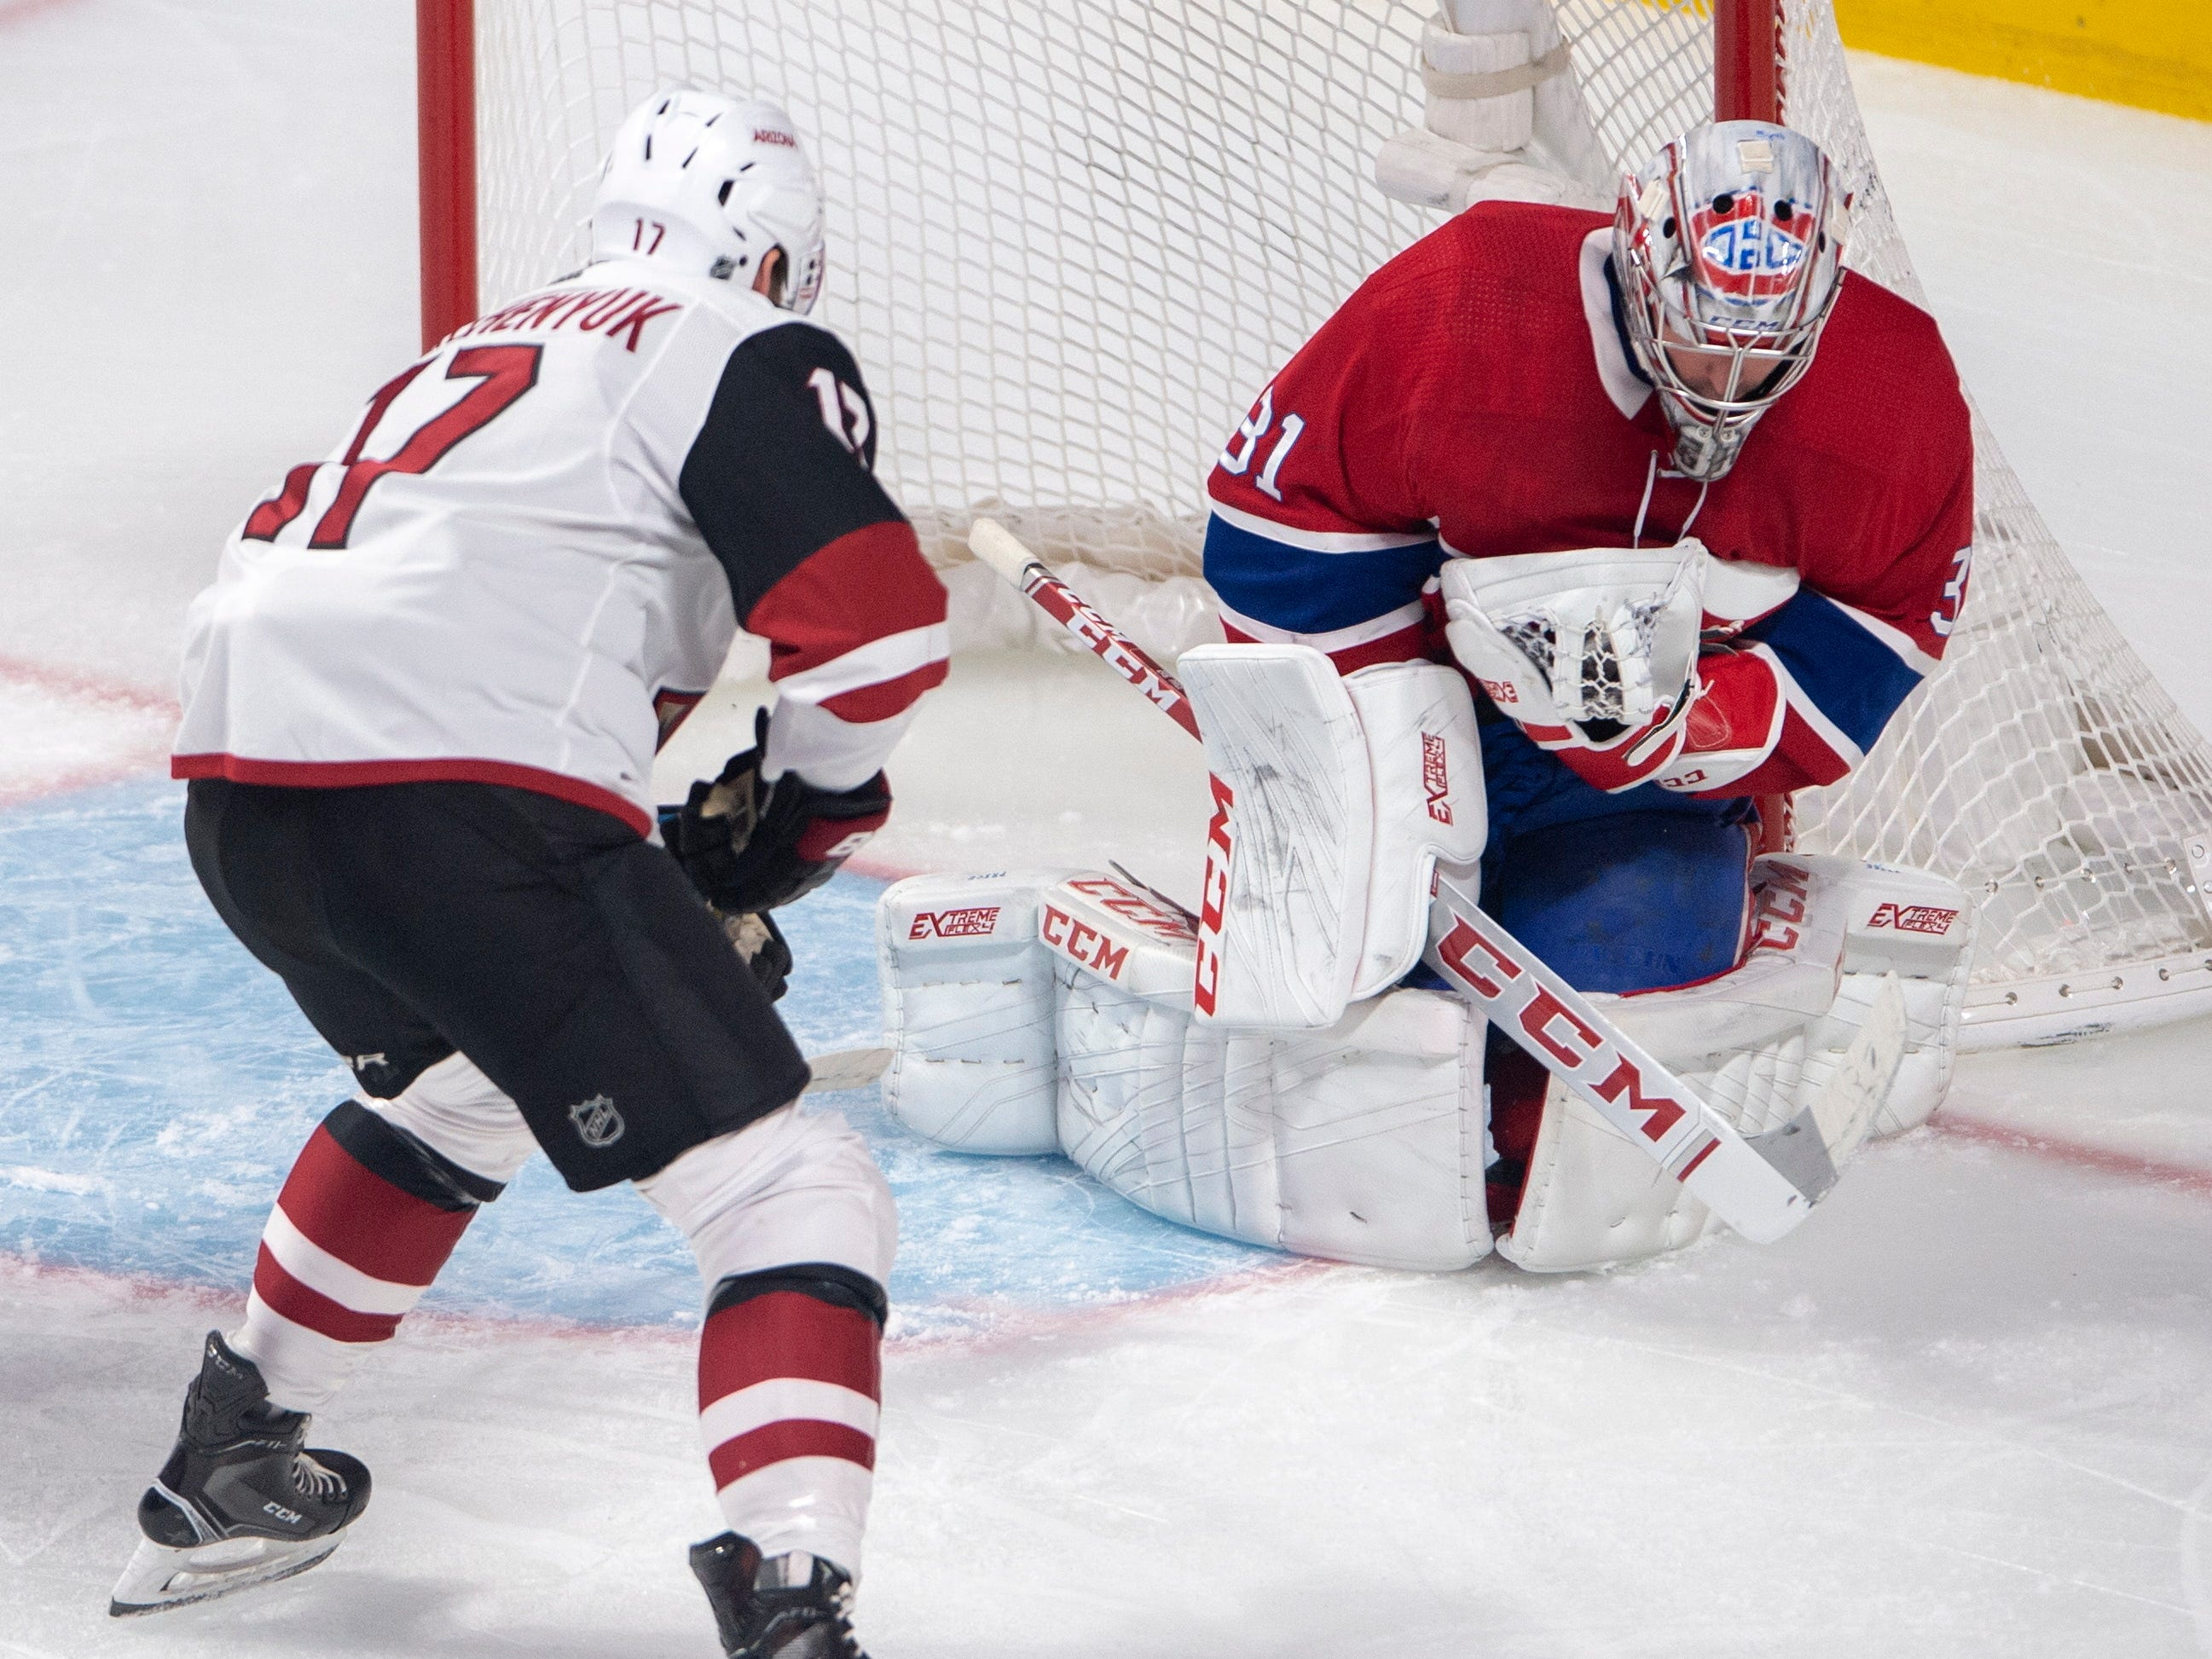 Montreal Canadiens goaltender Carey Price (31) stops Arizona Coyotes center Alex Galchenyuk (17) during the first period of an NHL hockey game Wednesday, Jan. 23, 2019, in Montreal. (Ryan Remiorz/The Canadian Press via AP)